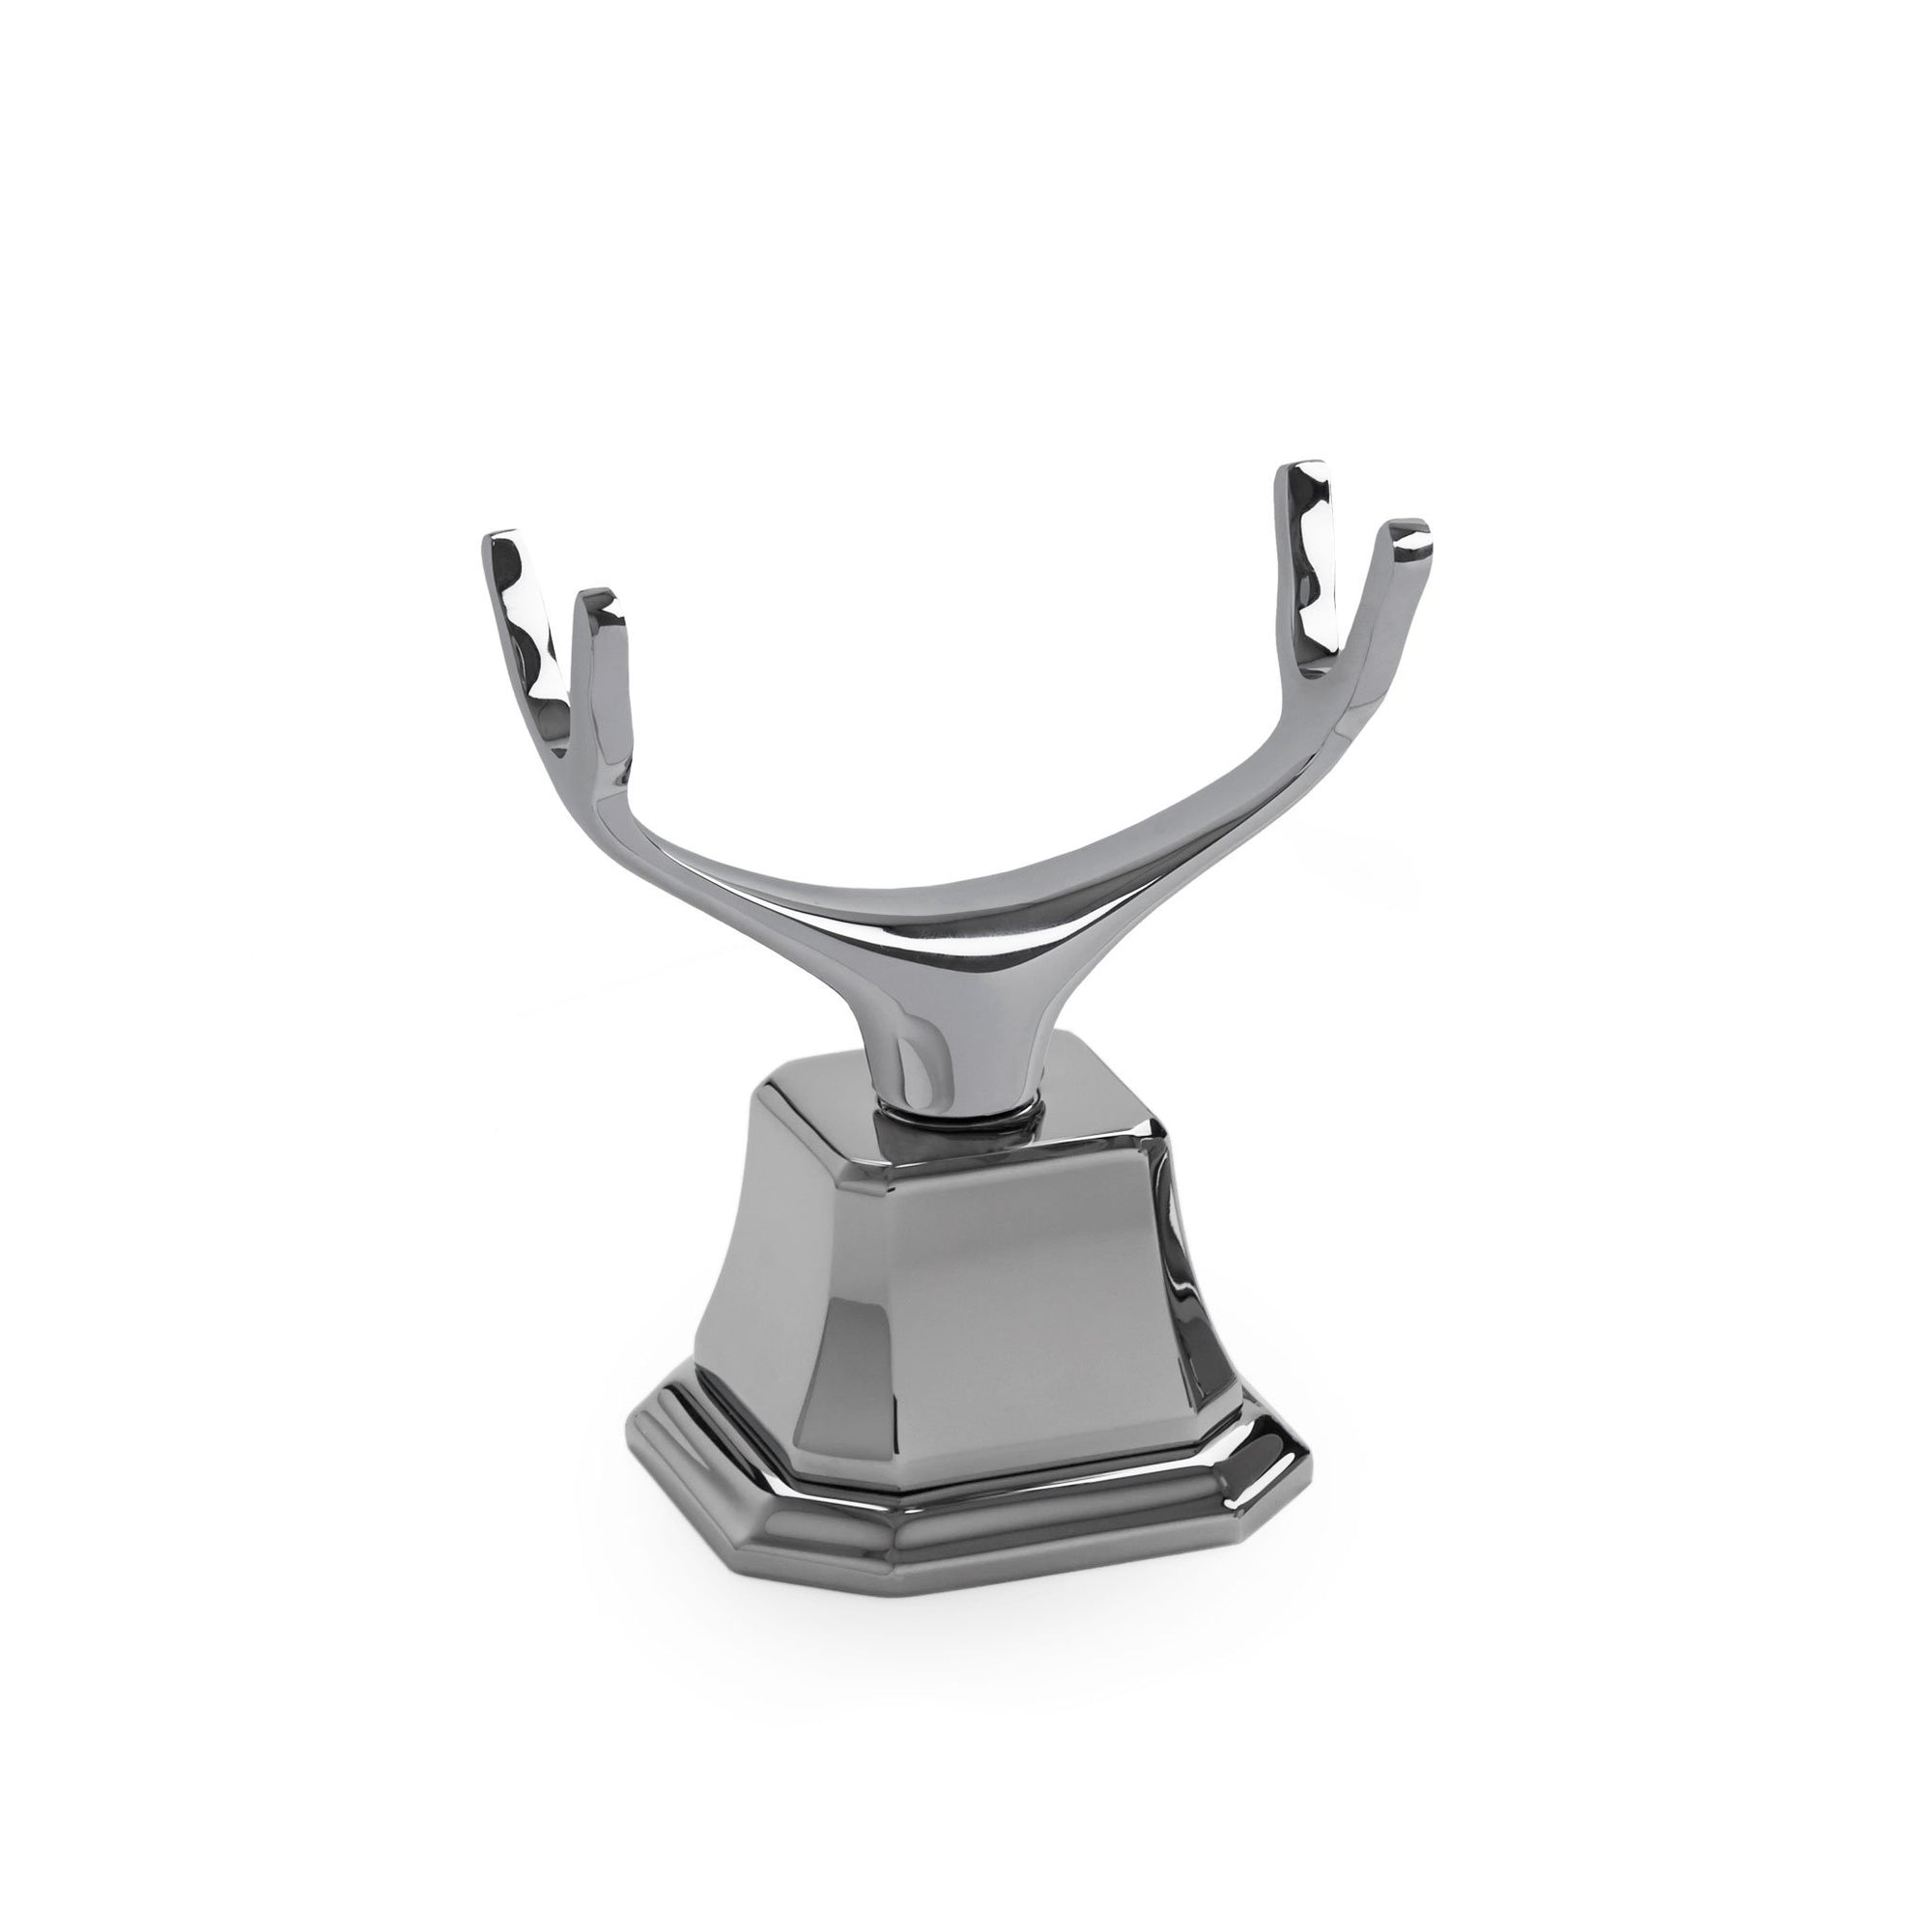 0849DKMT-HR-CP Sherle Wagner International Deck Mount Cradle with Harrison Escutcheon in Polished Chrome metal finish